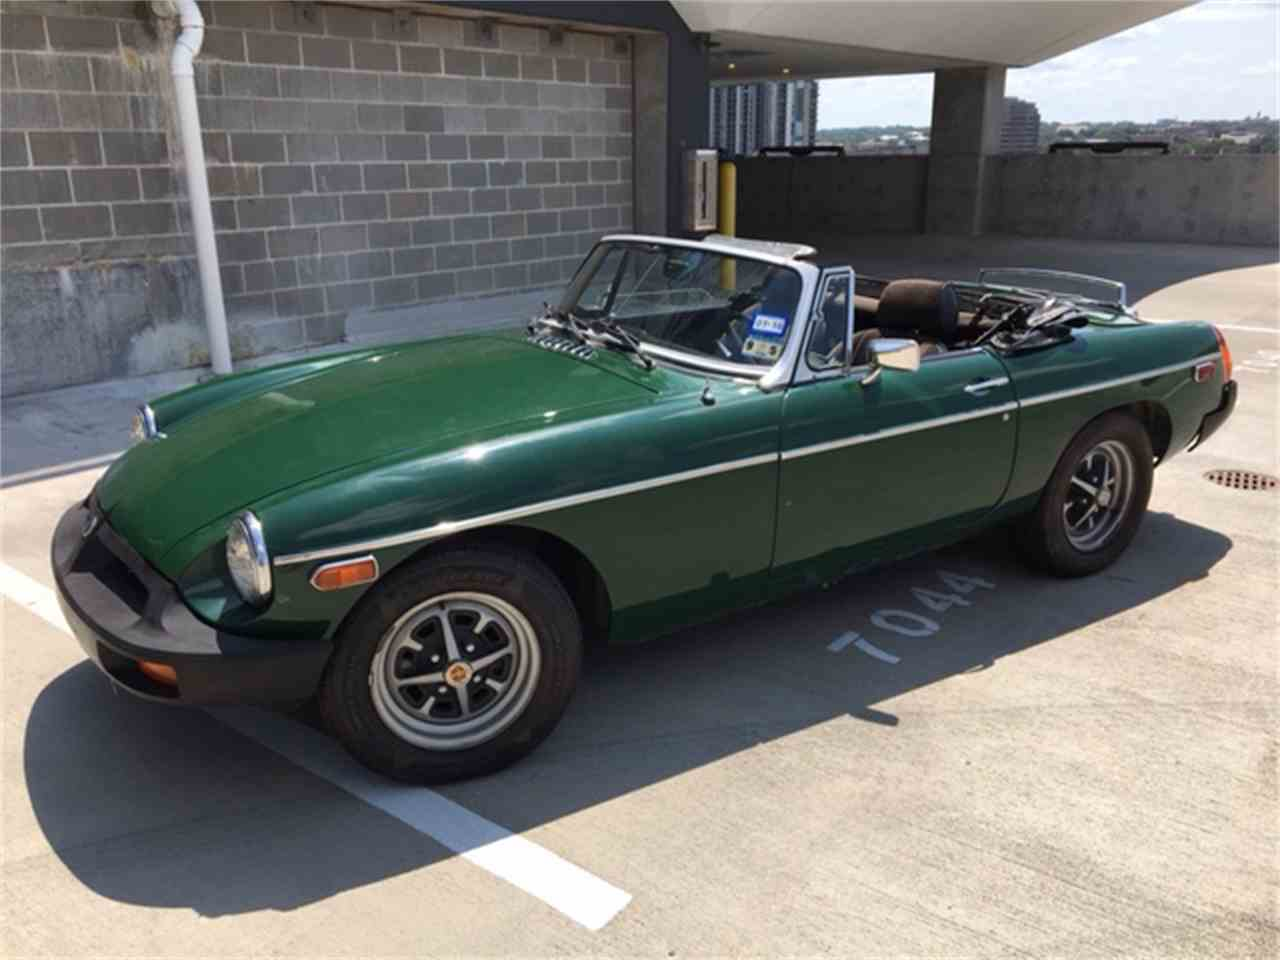 Large Picture of 1977 MG MGB located in Texas - $3,500.00 Offered by a Private Seller - LU57